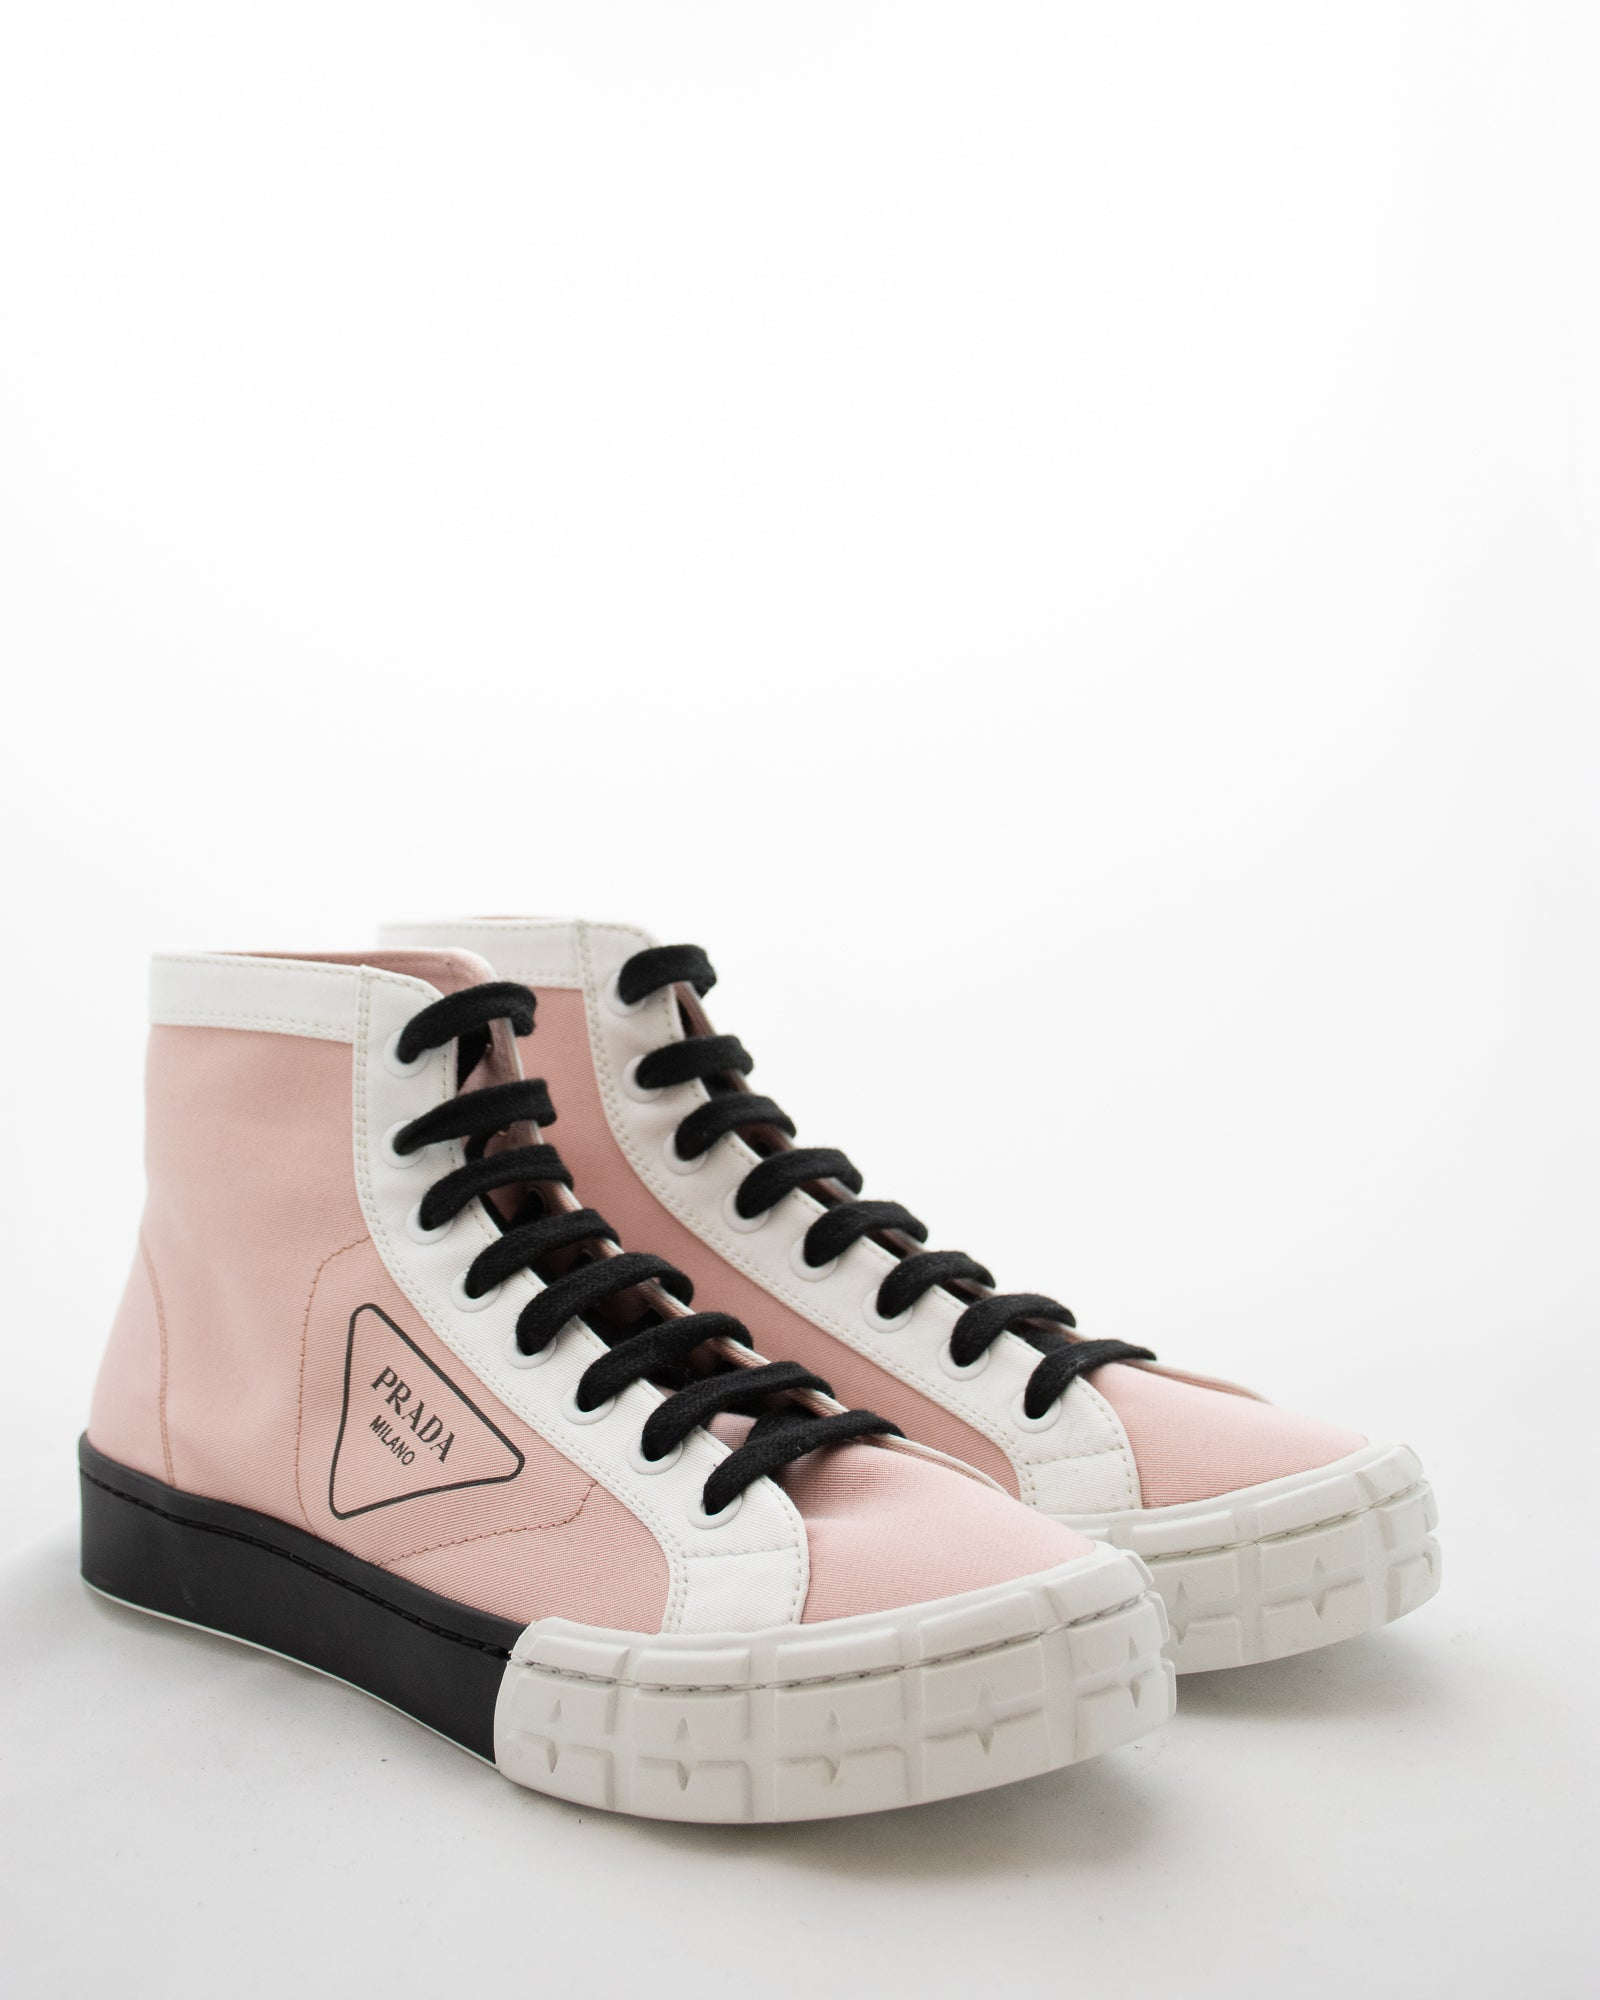 PRADA Cassetta High Top Sneakers